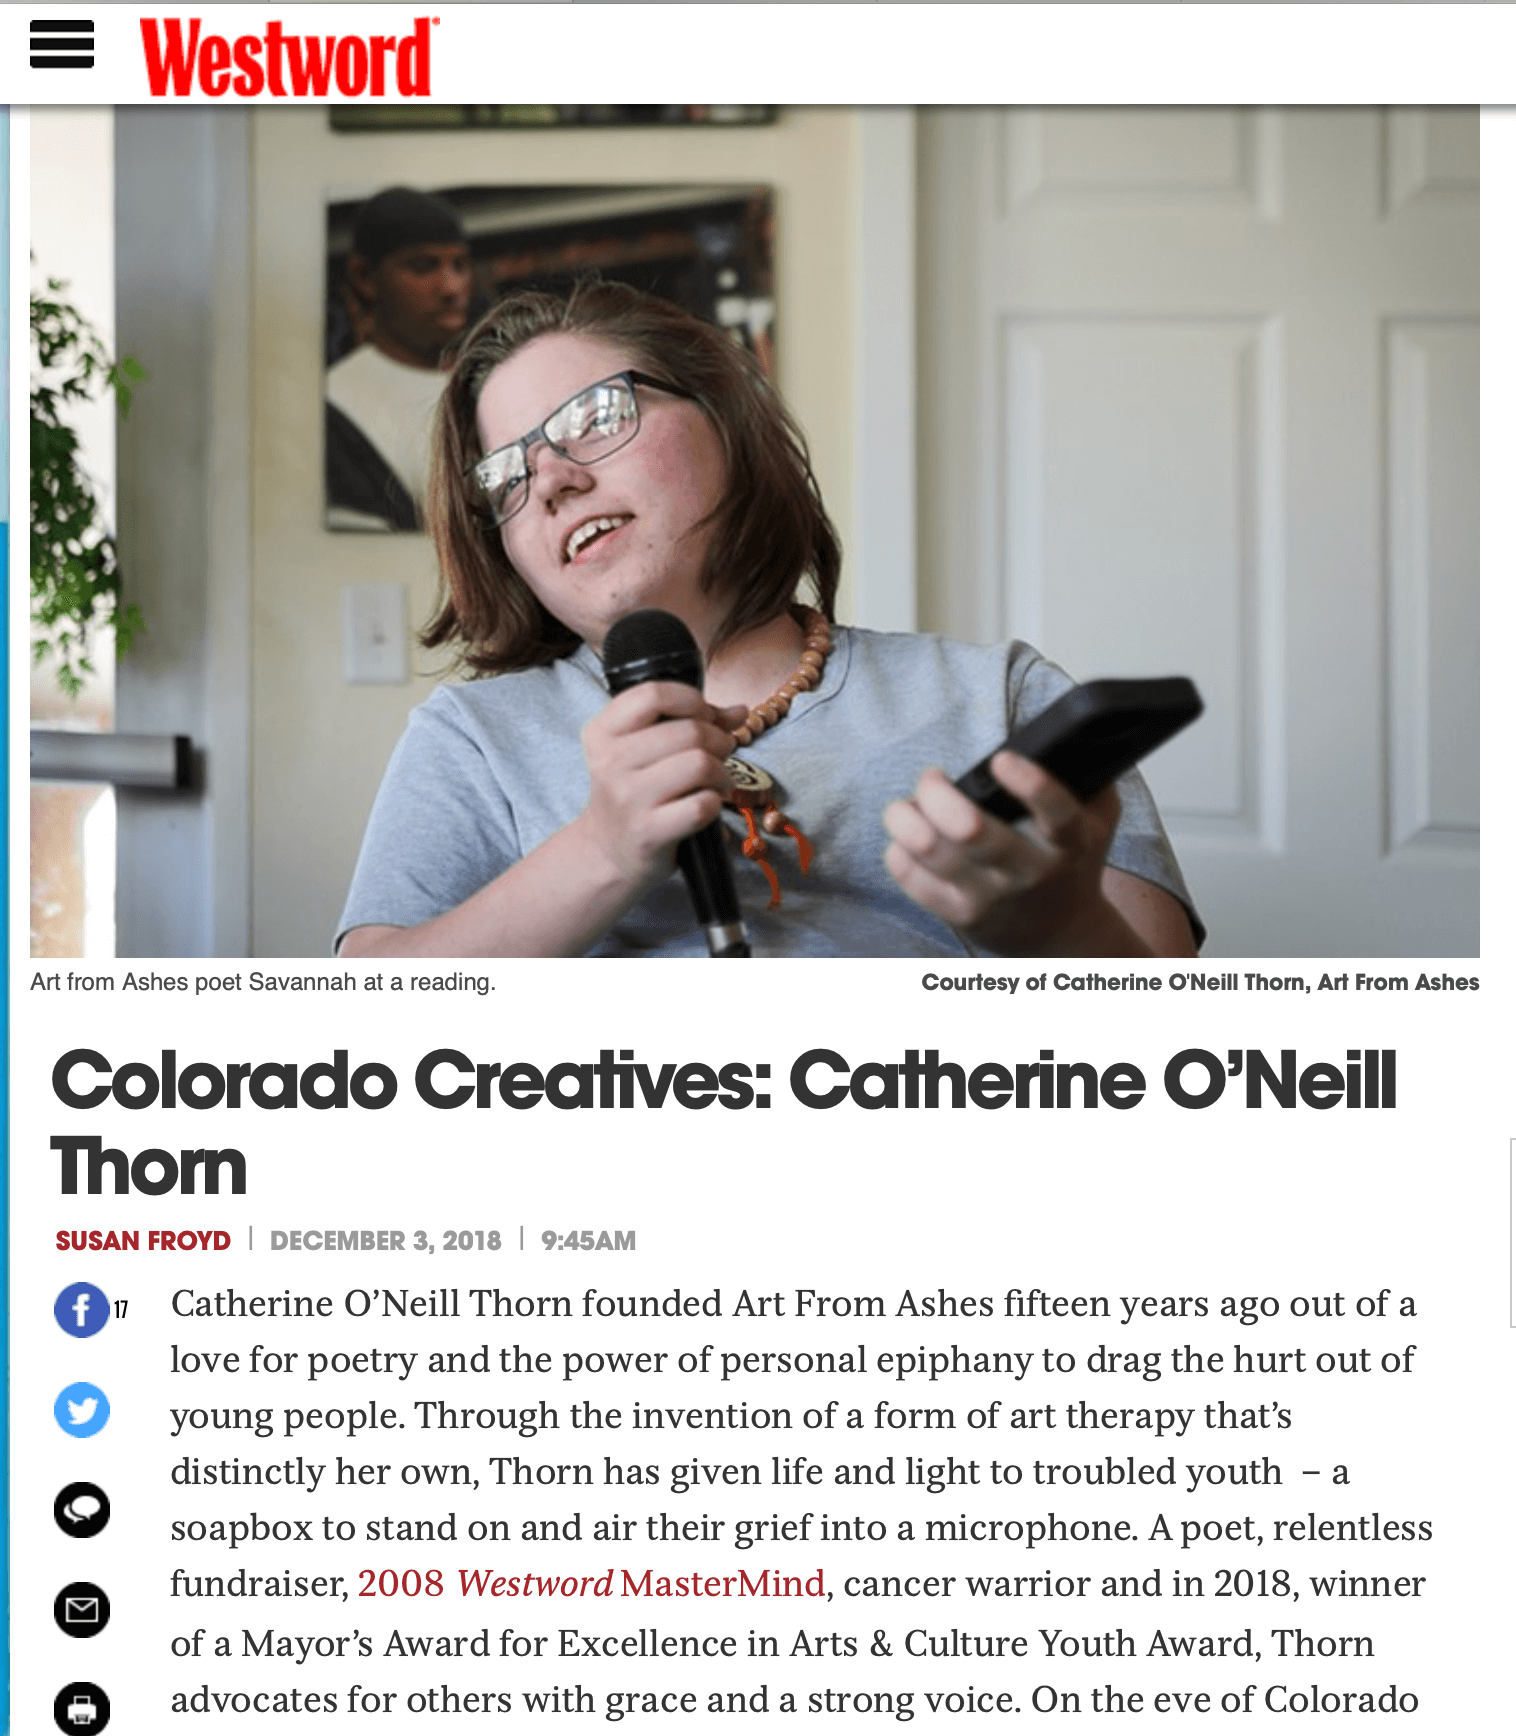 2018 Westword Article